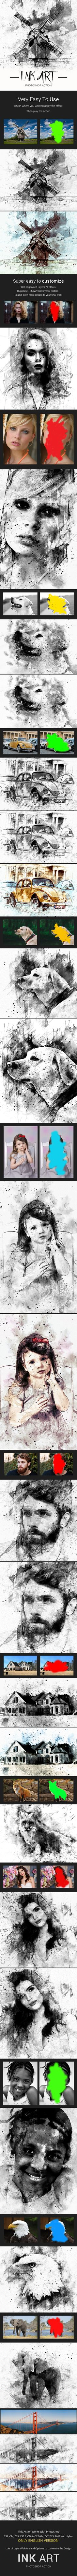 Ink Art Photoshop Action  Advanced — Photoshop ATN #painting #photoshop • Download ➝ https://graphicriver.net/item/ink-art-photoshop-action-advanced/21452148?ref=pxcr